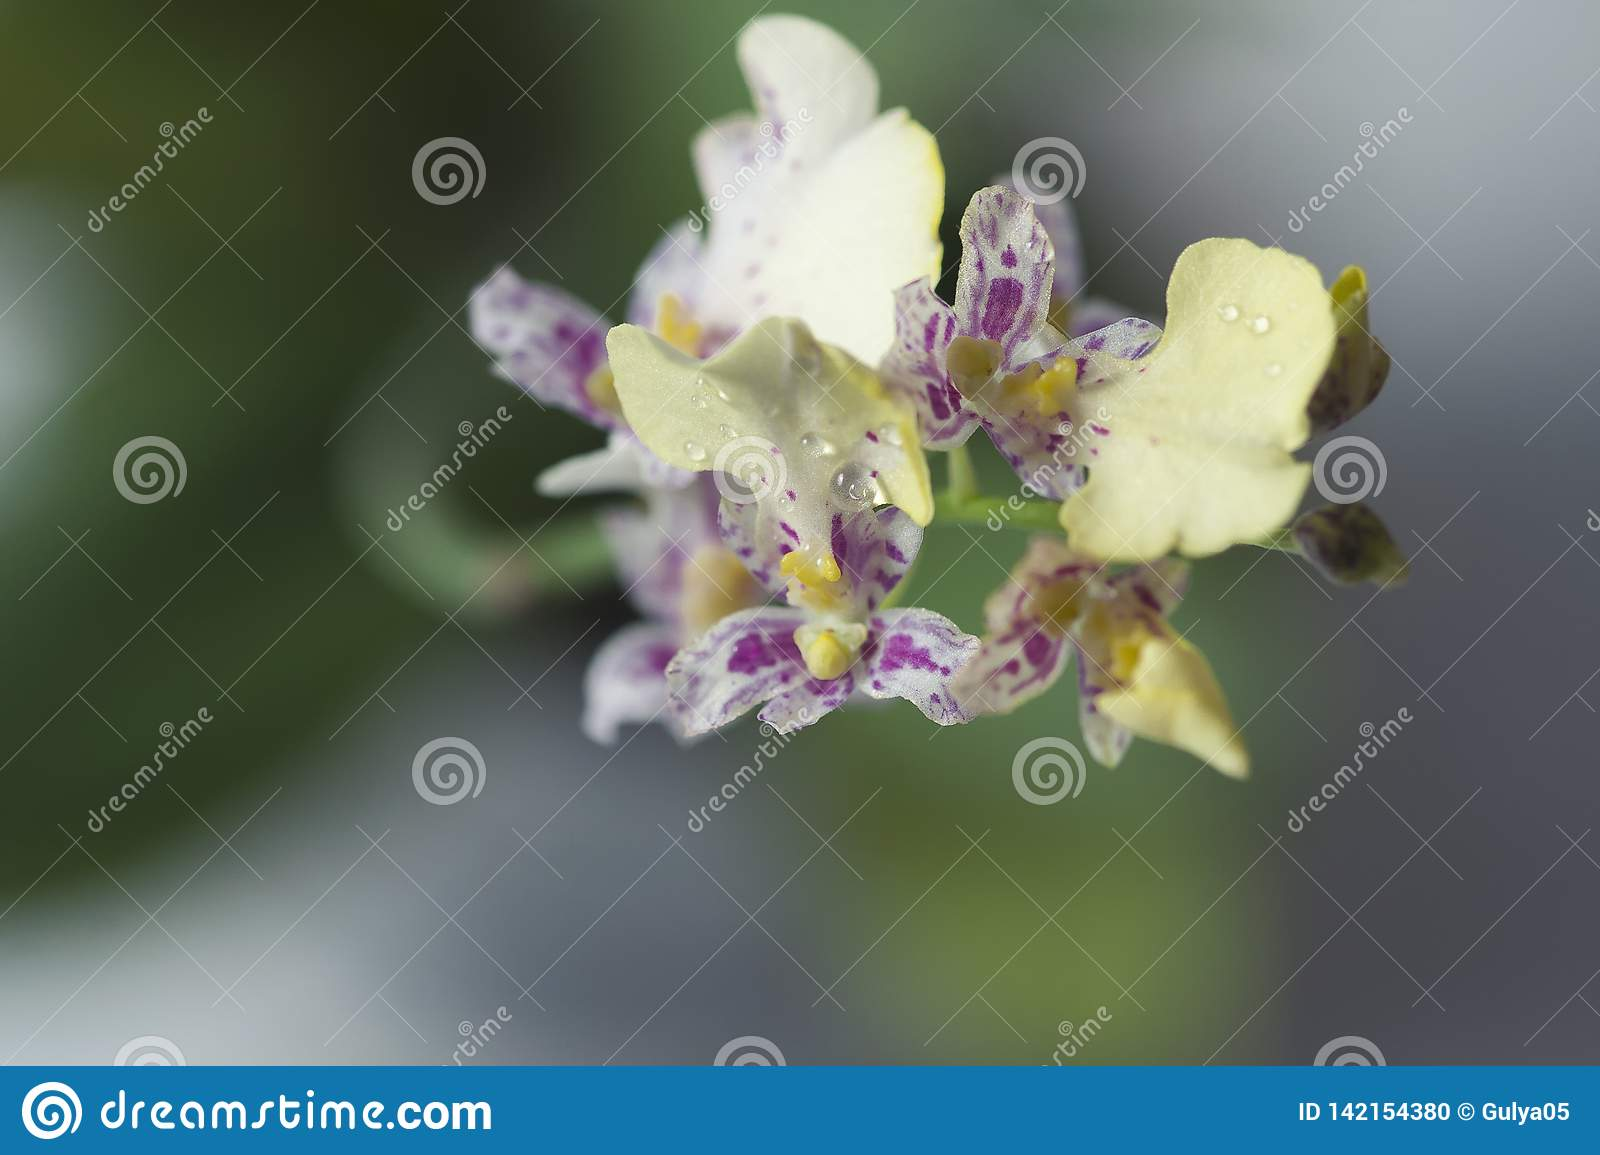 Beautiful closeup of an orchid White Oncidium Twinkle mini orchid.